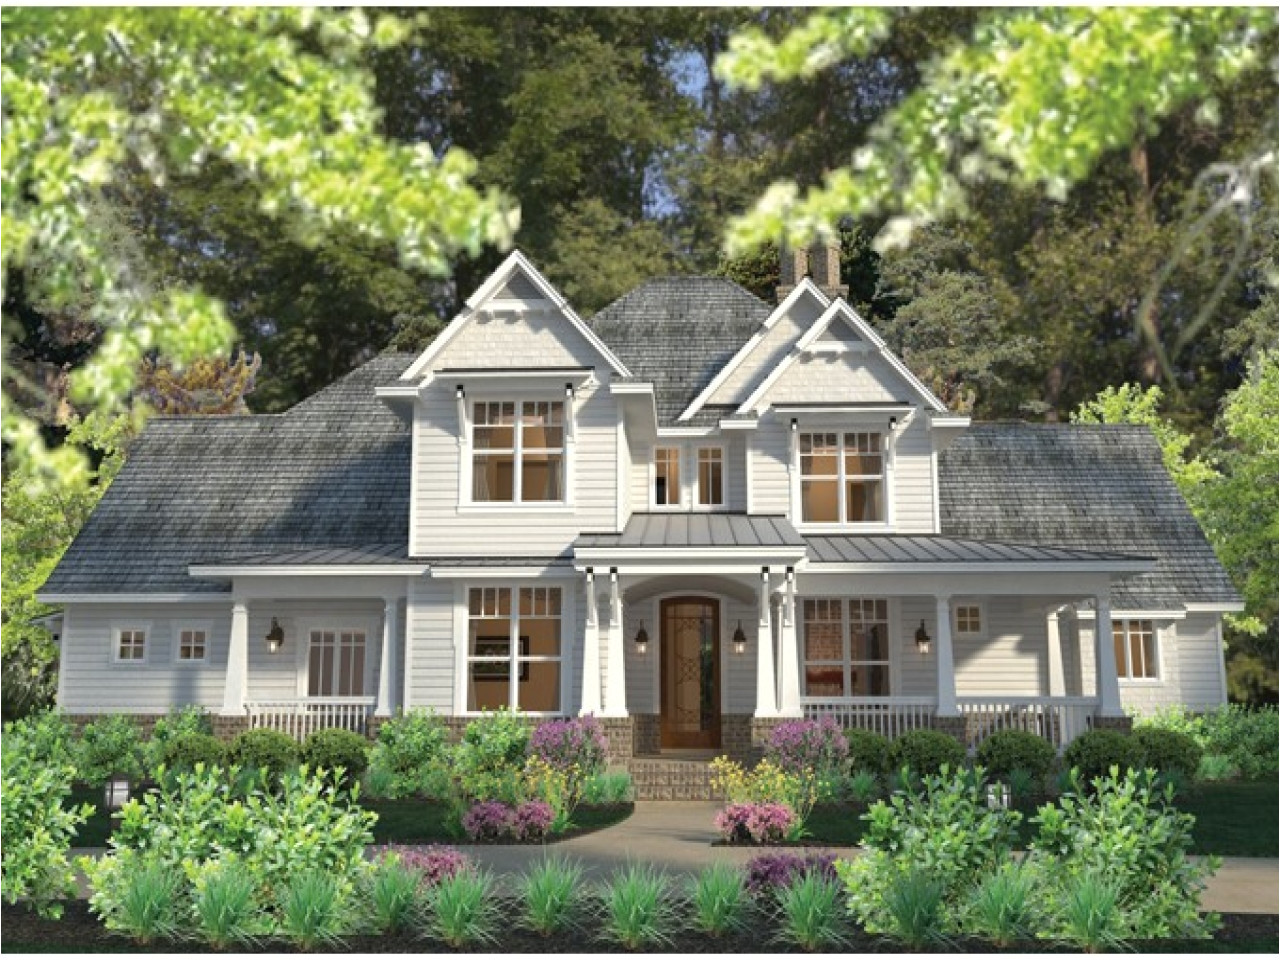 ca41b12465ee6517 eplans farmhouse house plan modern farmhouse with vintage appeal country house plans with porches